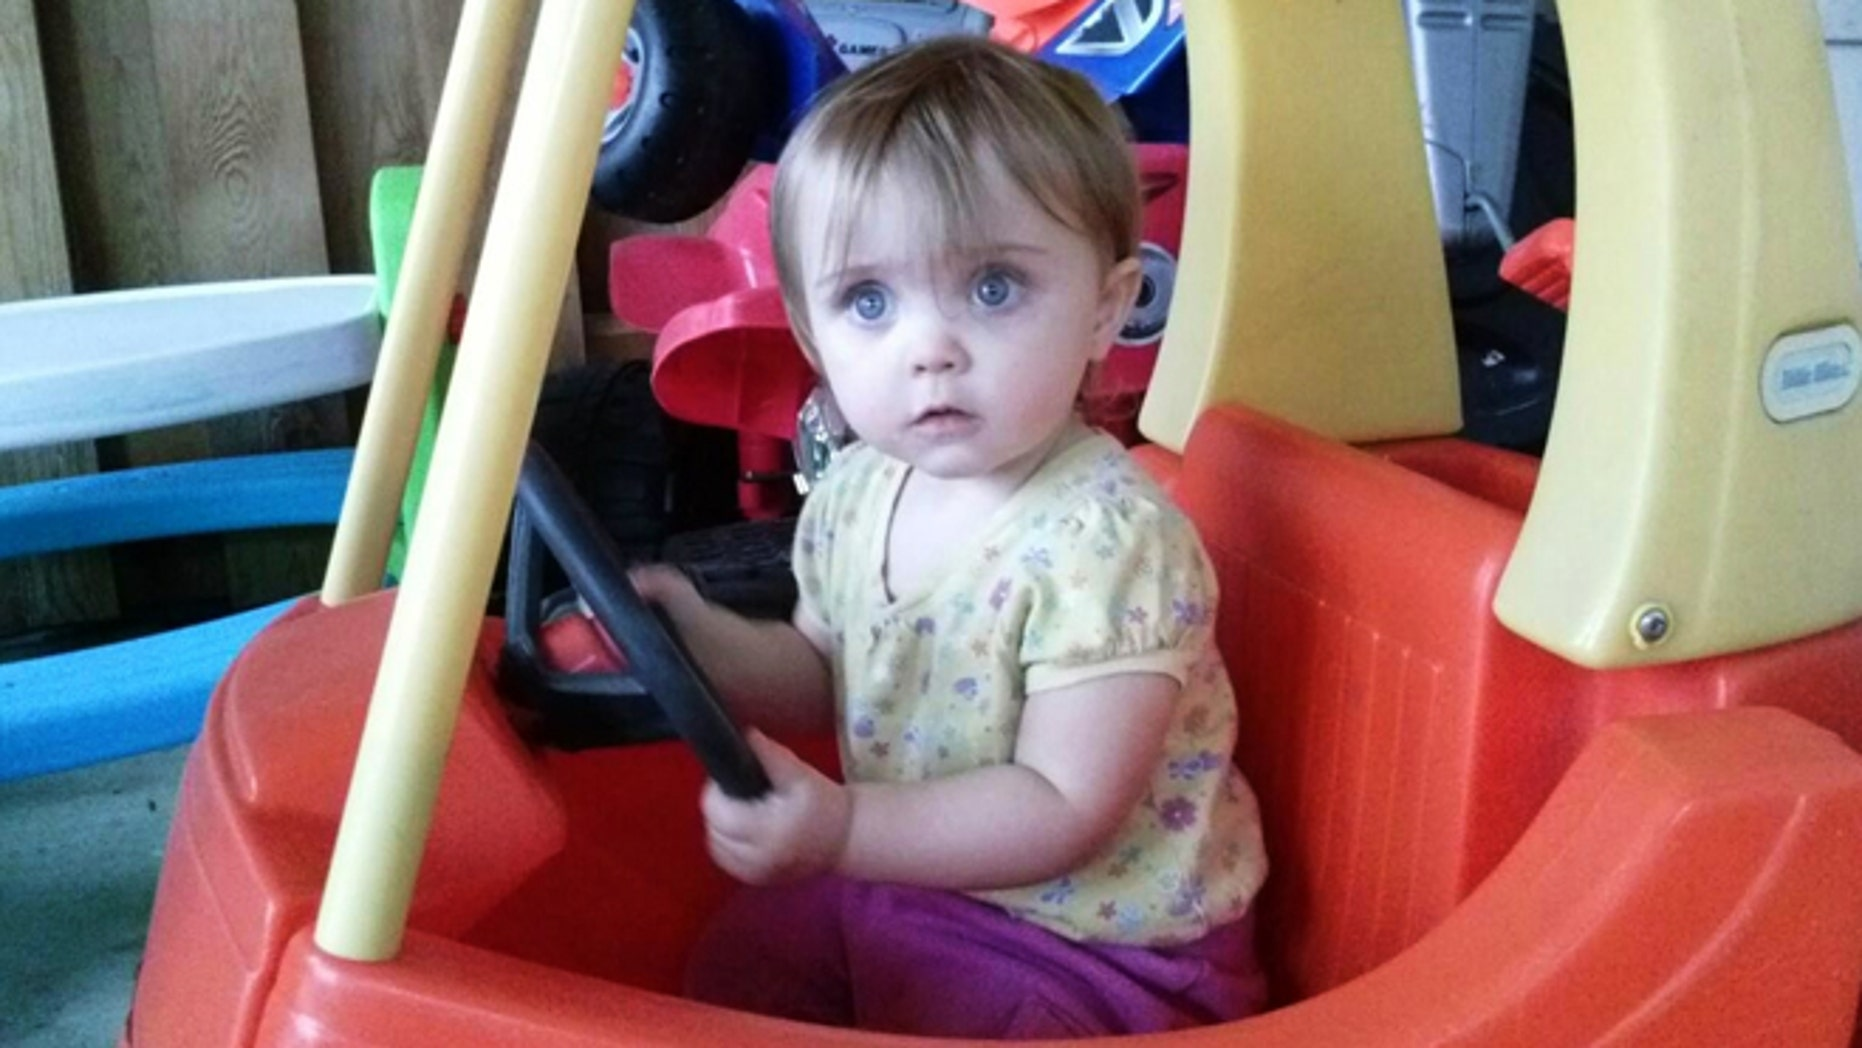 May 8, 2013: This recent but undated family photo shows 18-month-old Lana Bailey. The bodies of a woman and two men who were found slain on an eastern Kansas farm were those of a young mother who went missing last week with her daughter, Lana, and two men who lived there, authorities said.